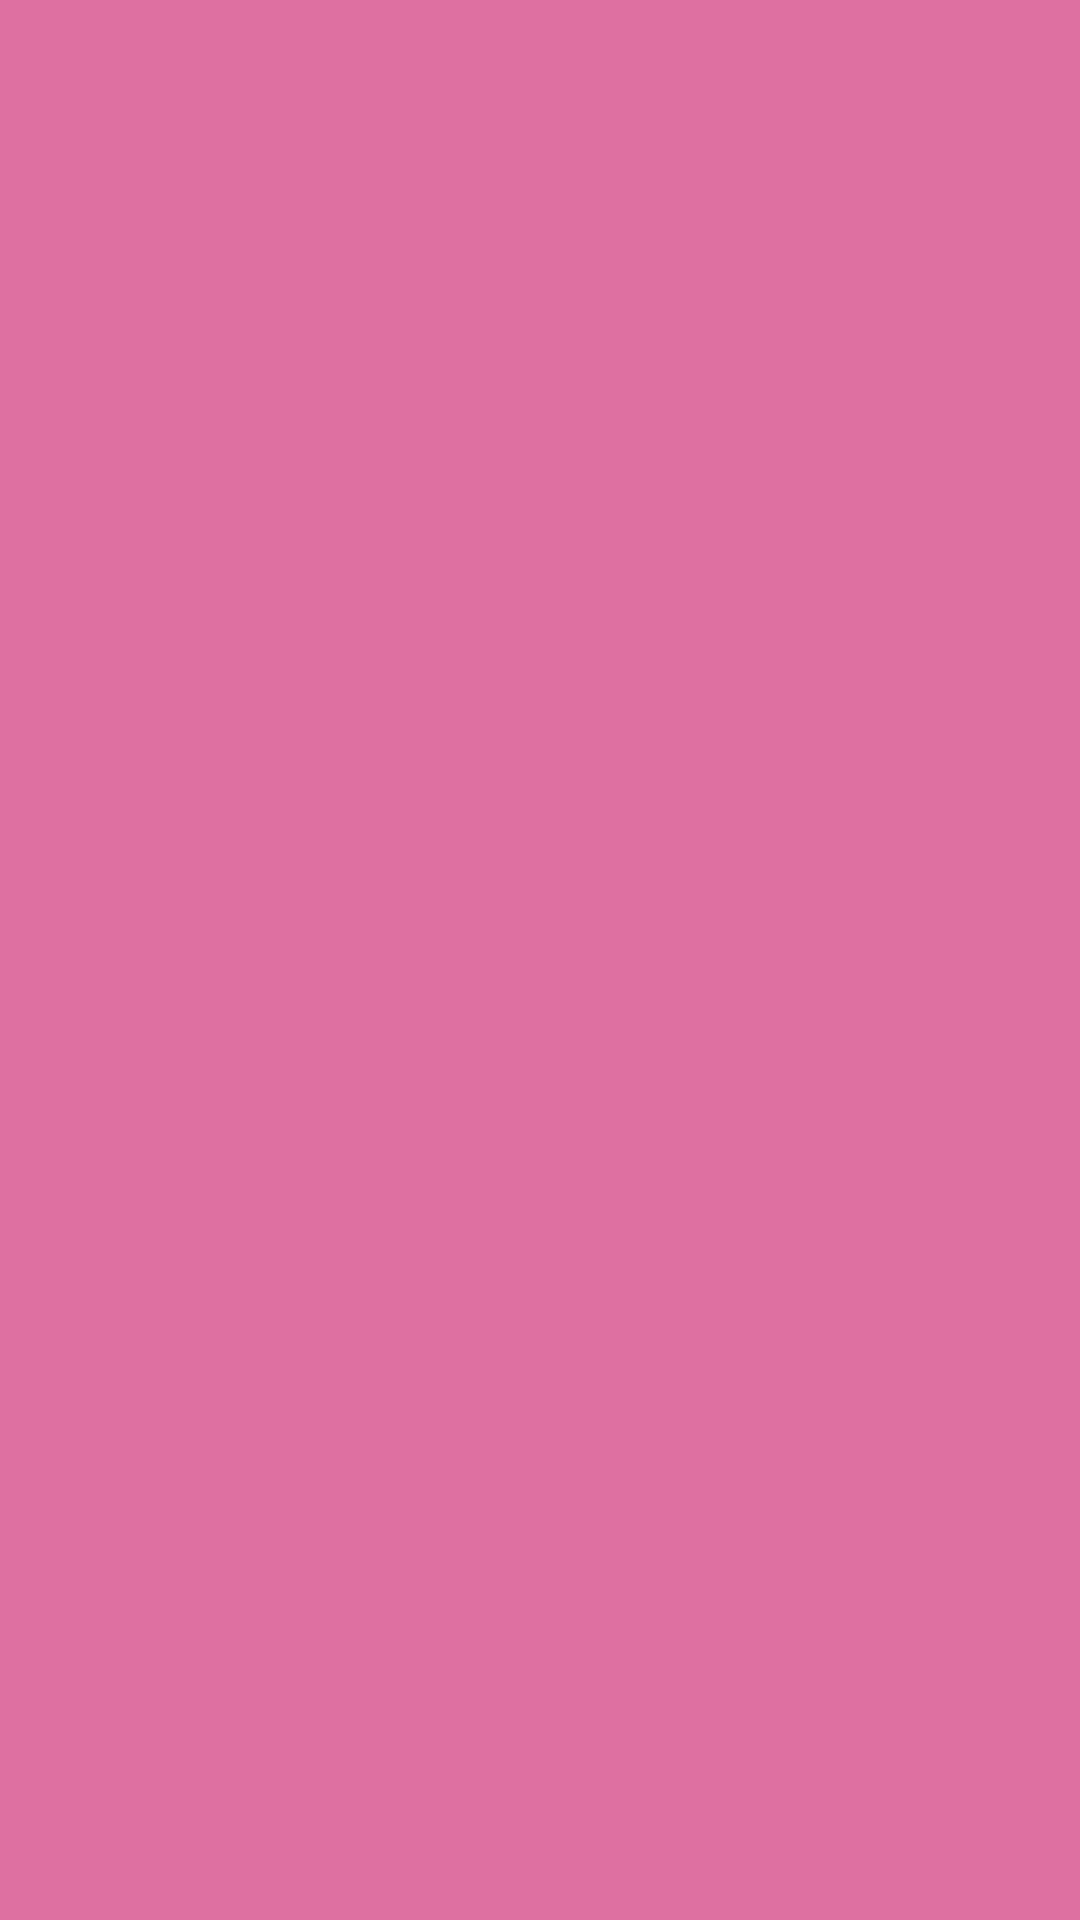 1080x1920 Thulian Pink Solid Color Background